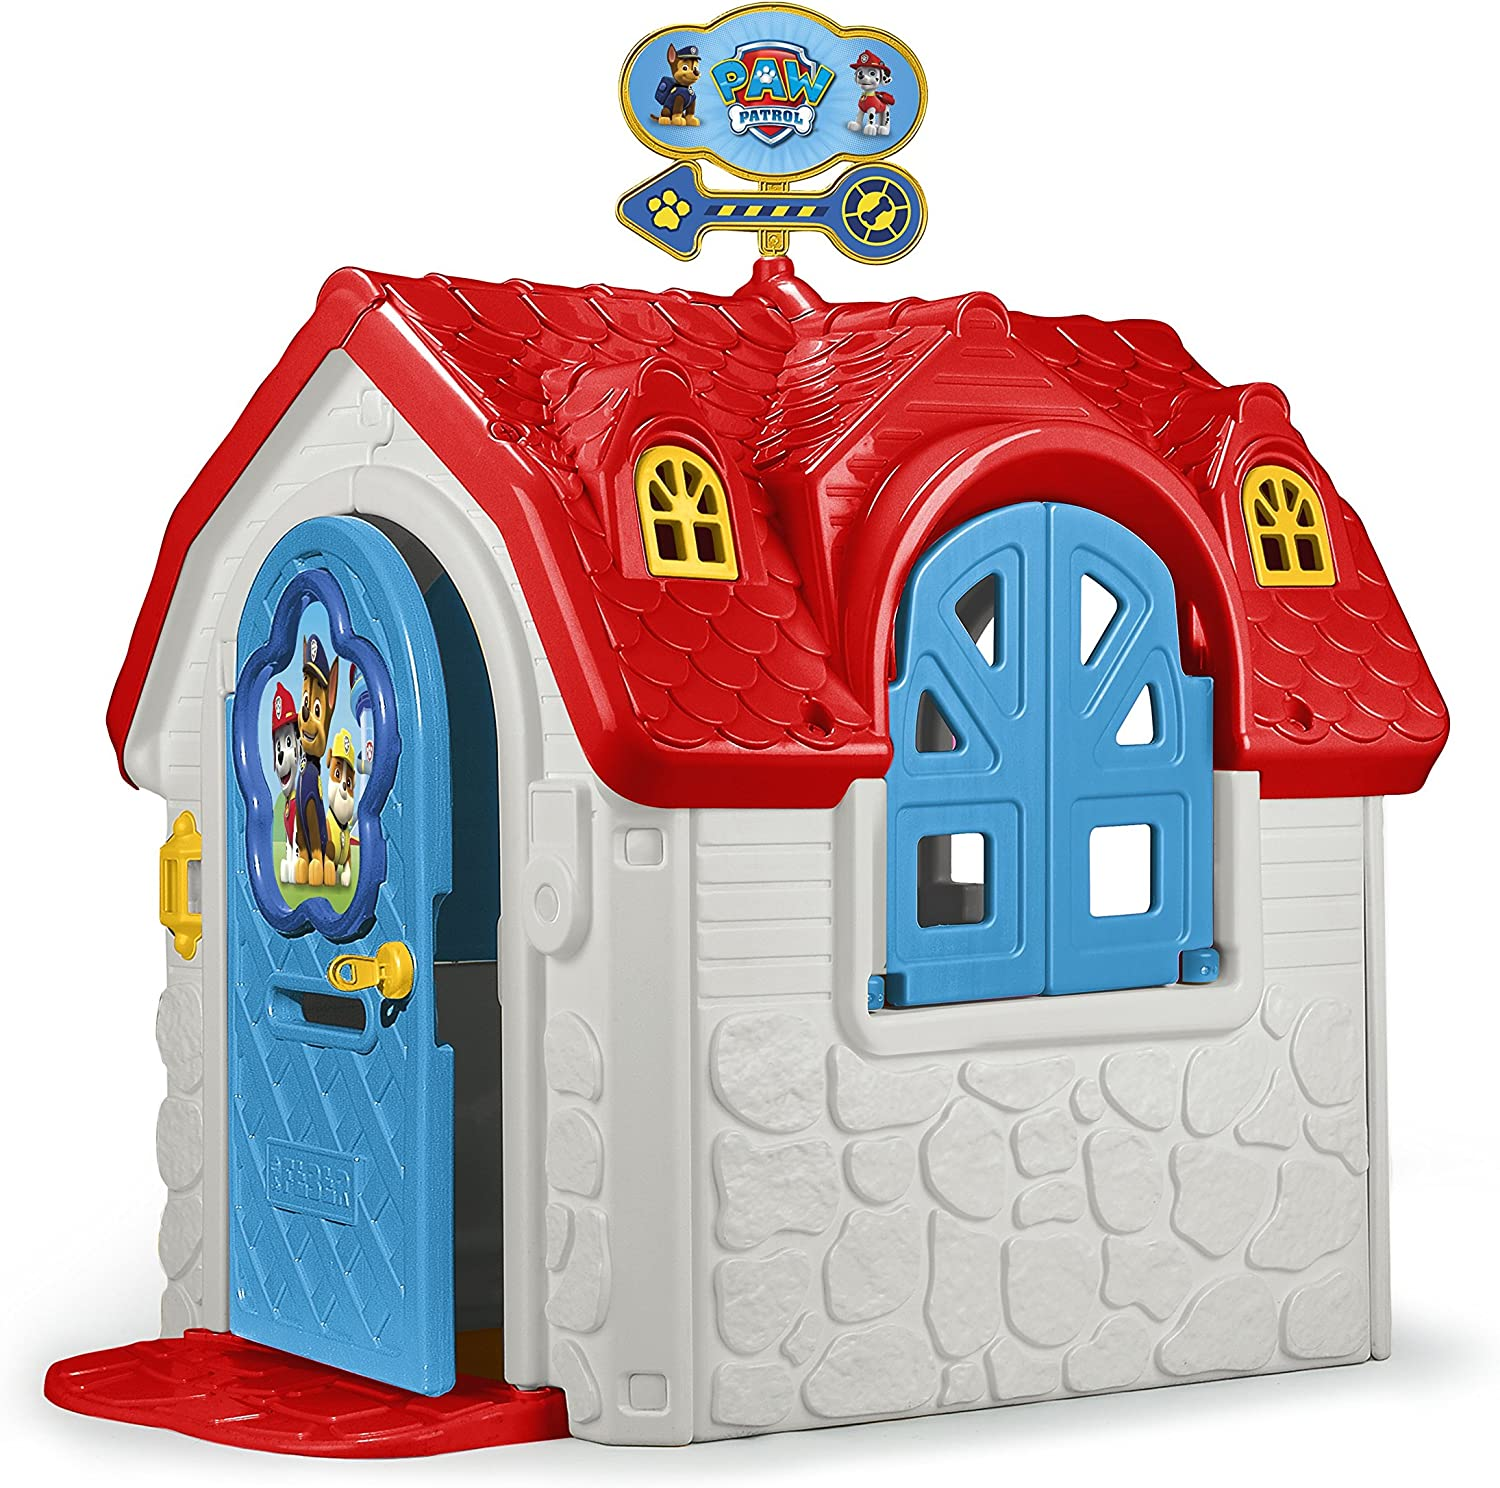 Feber Playhouse Lovely House Paw Patrol Amazon Com Mx Juegos Y Juguetes